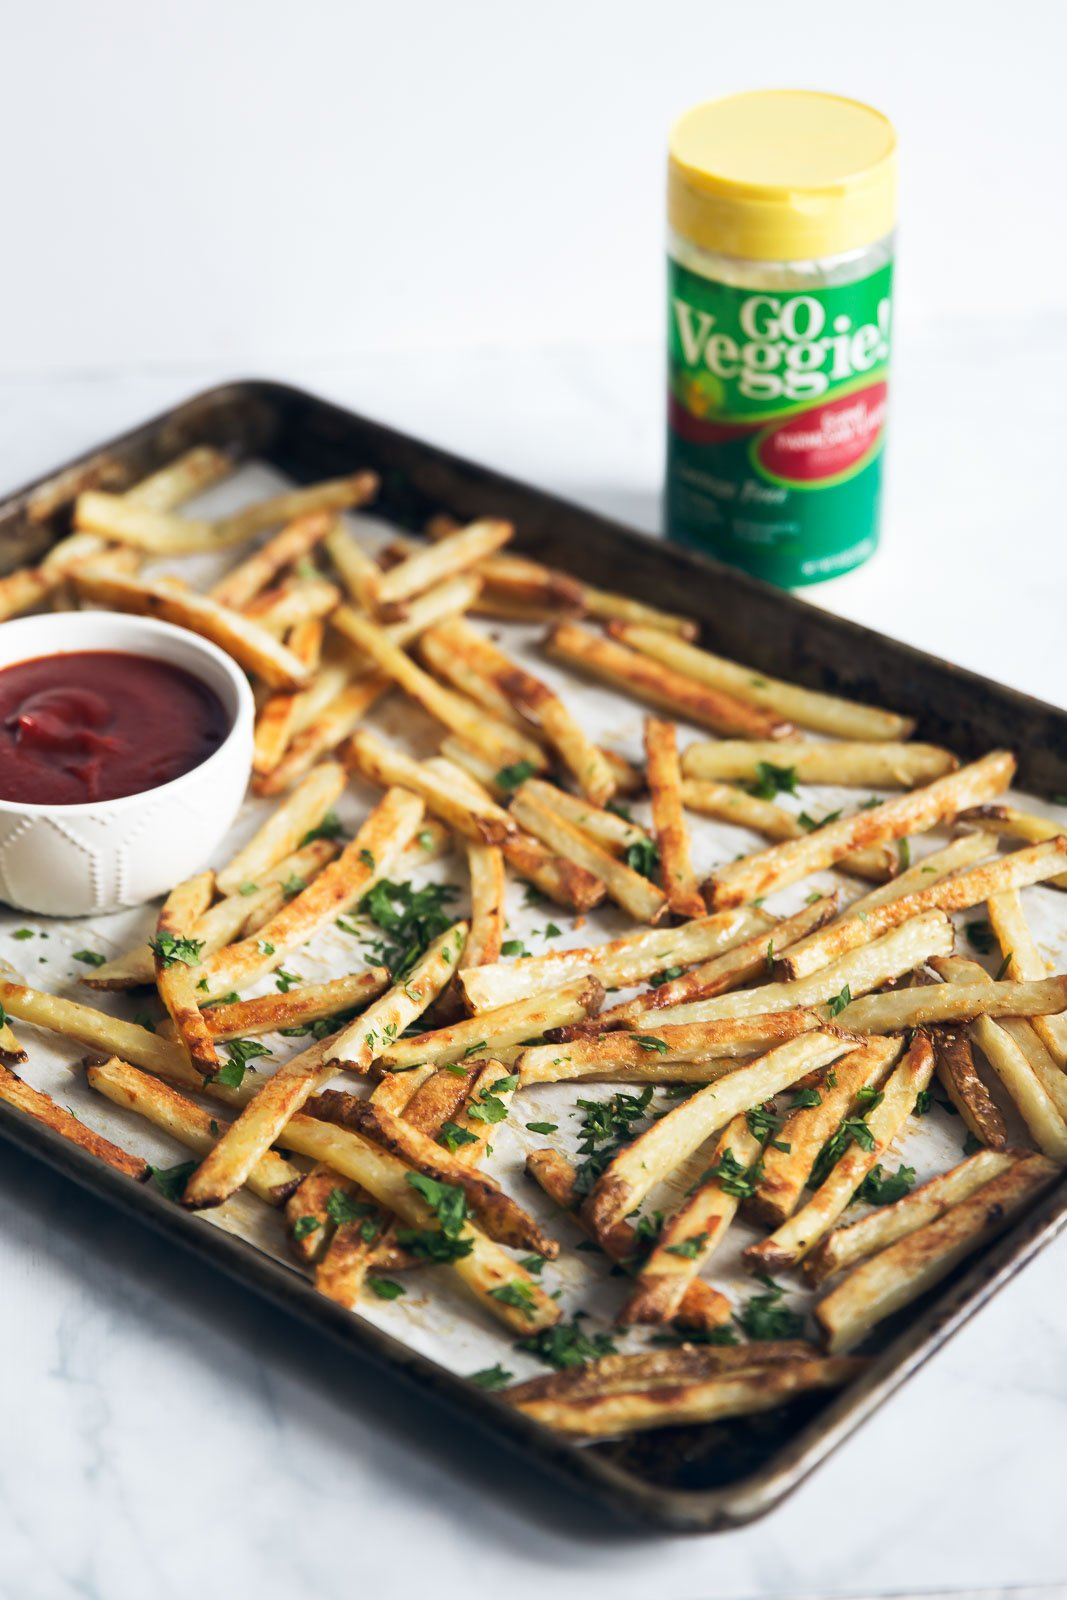 healthy baked french fries on a baking tray with ketchup